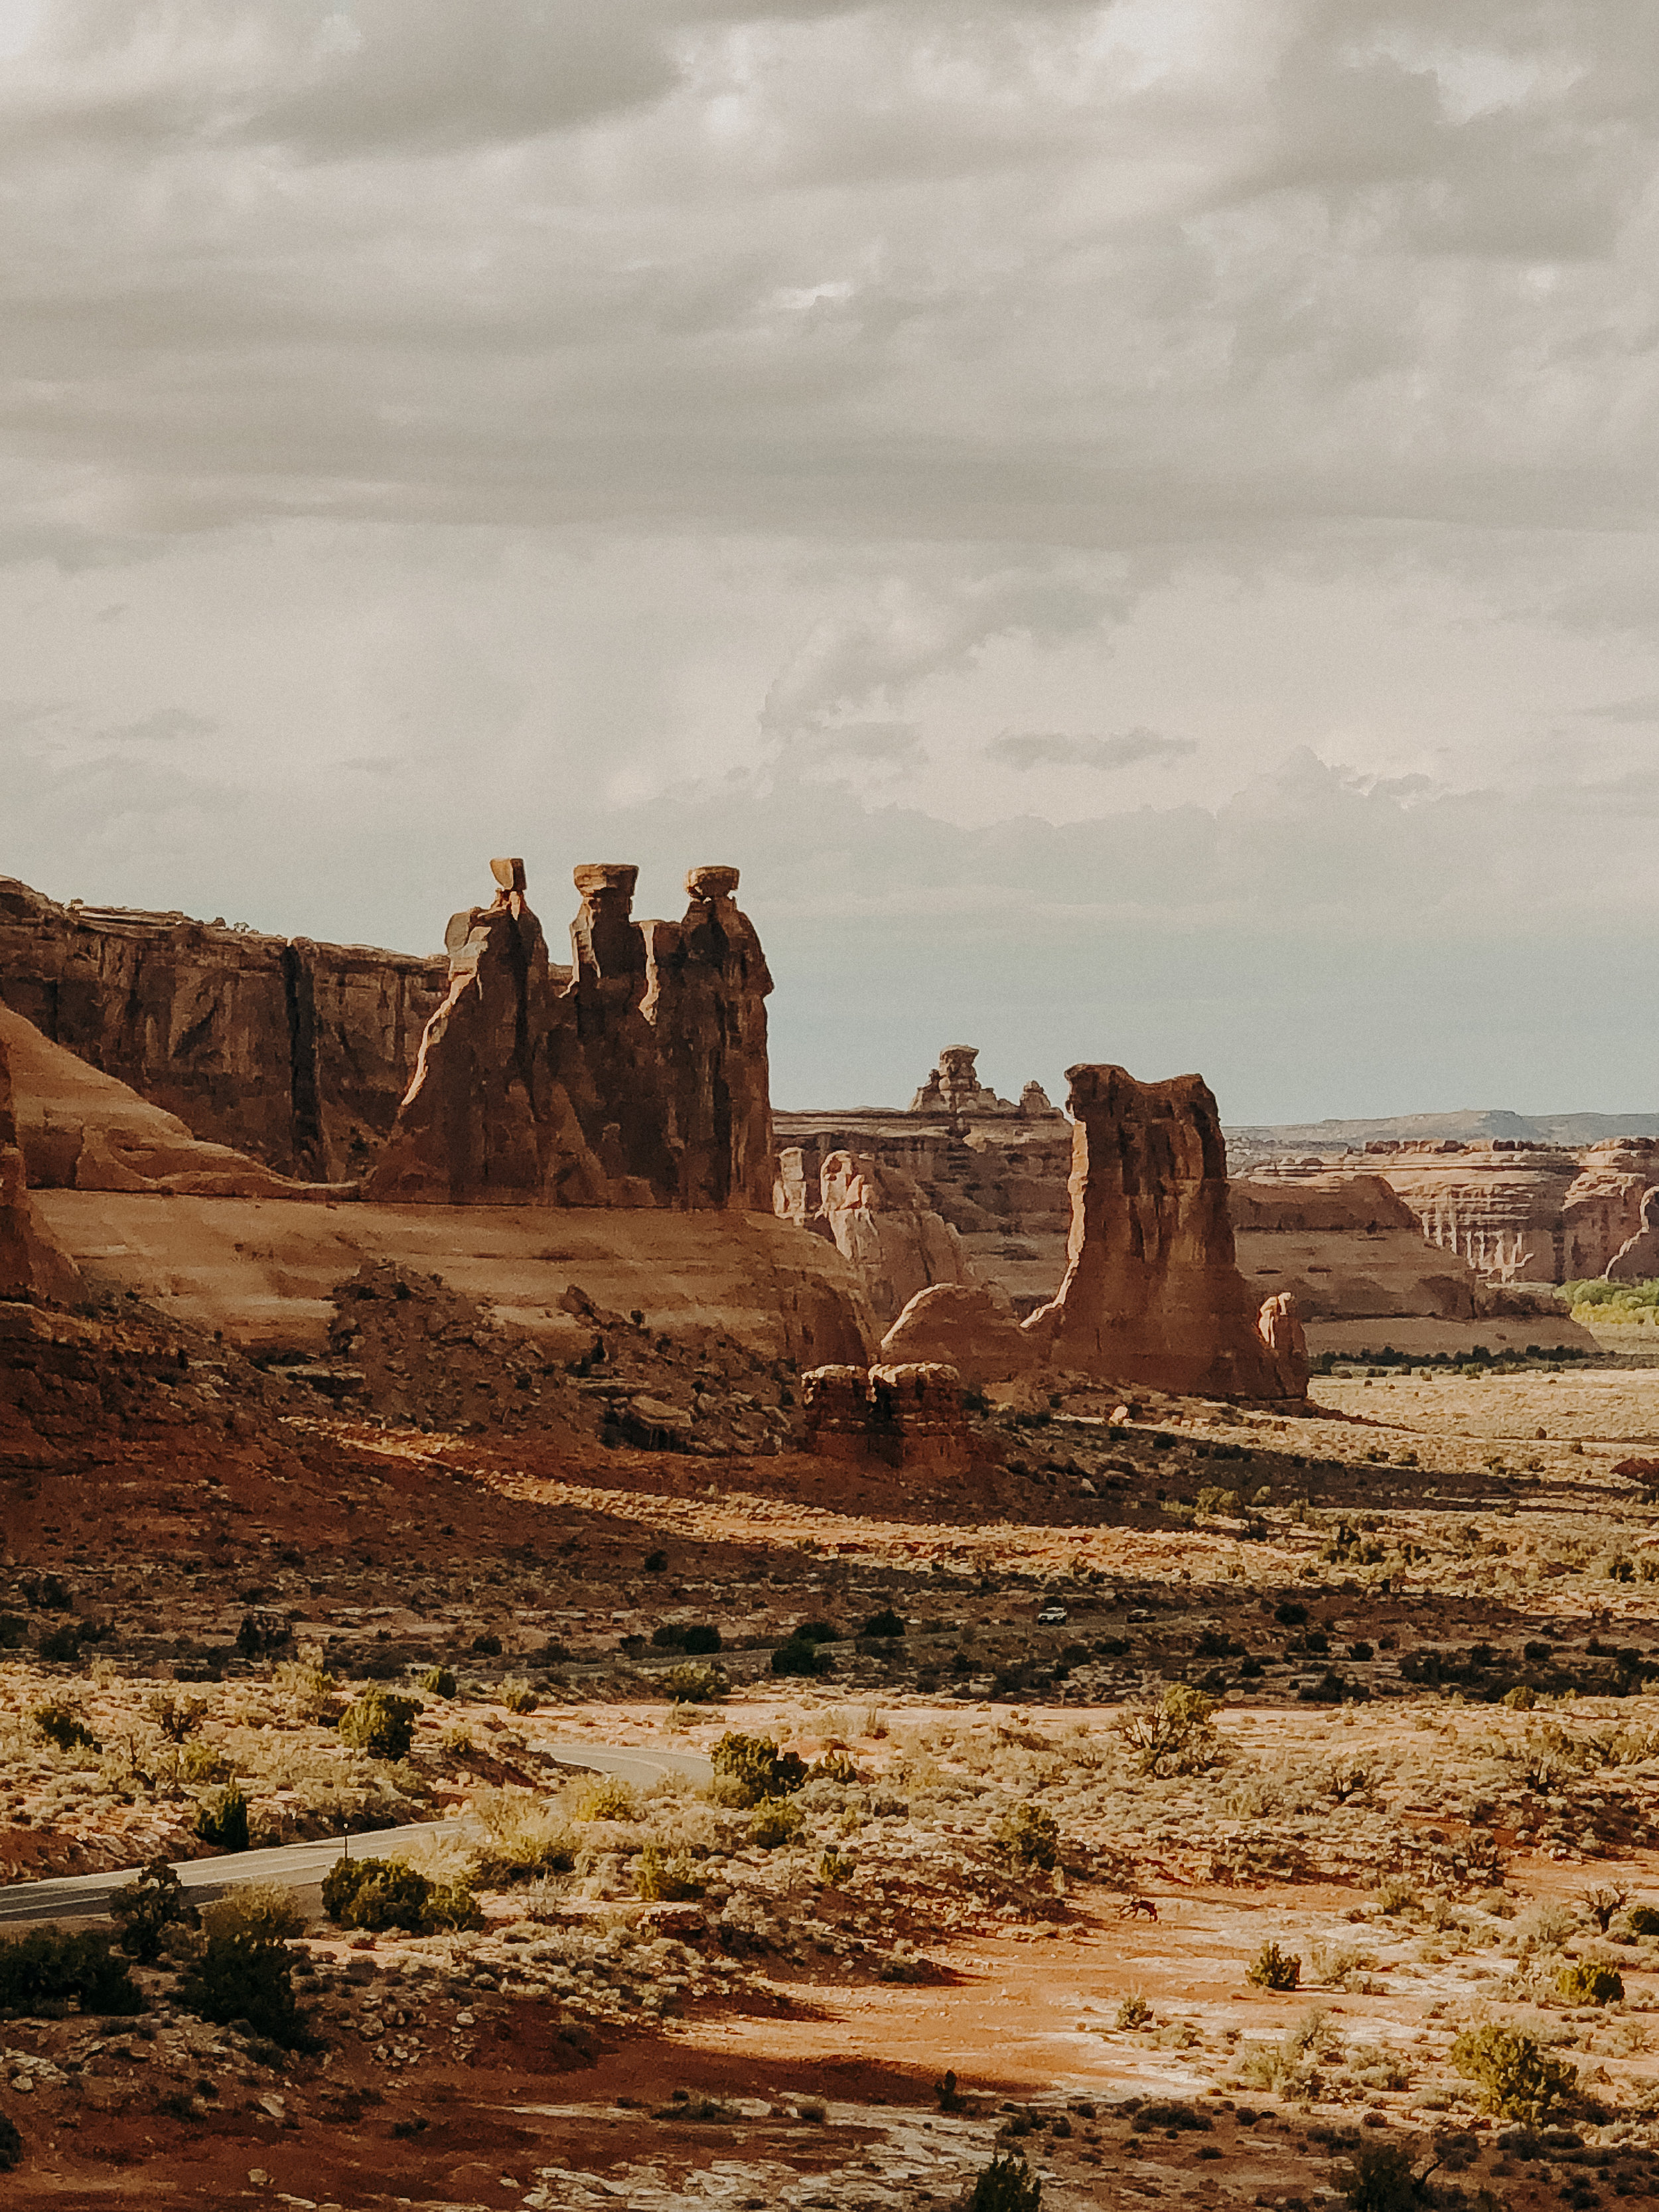 visit-arches-national-park-what-to-do-22.jpg